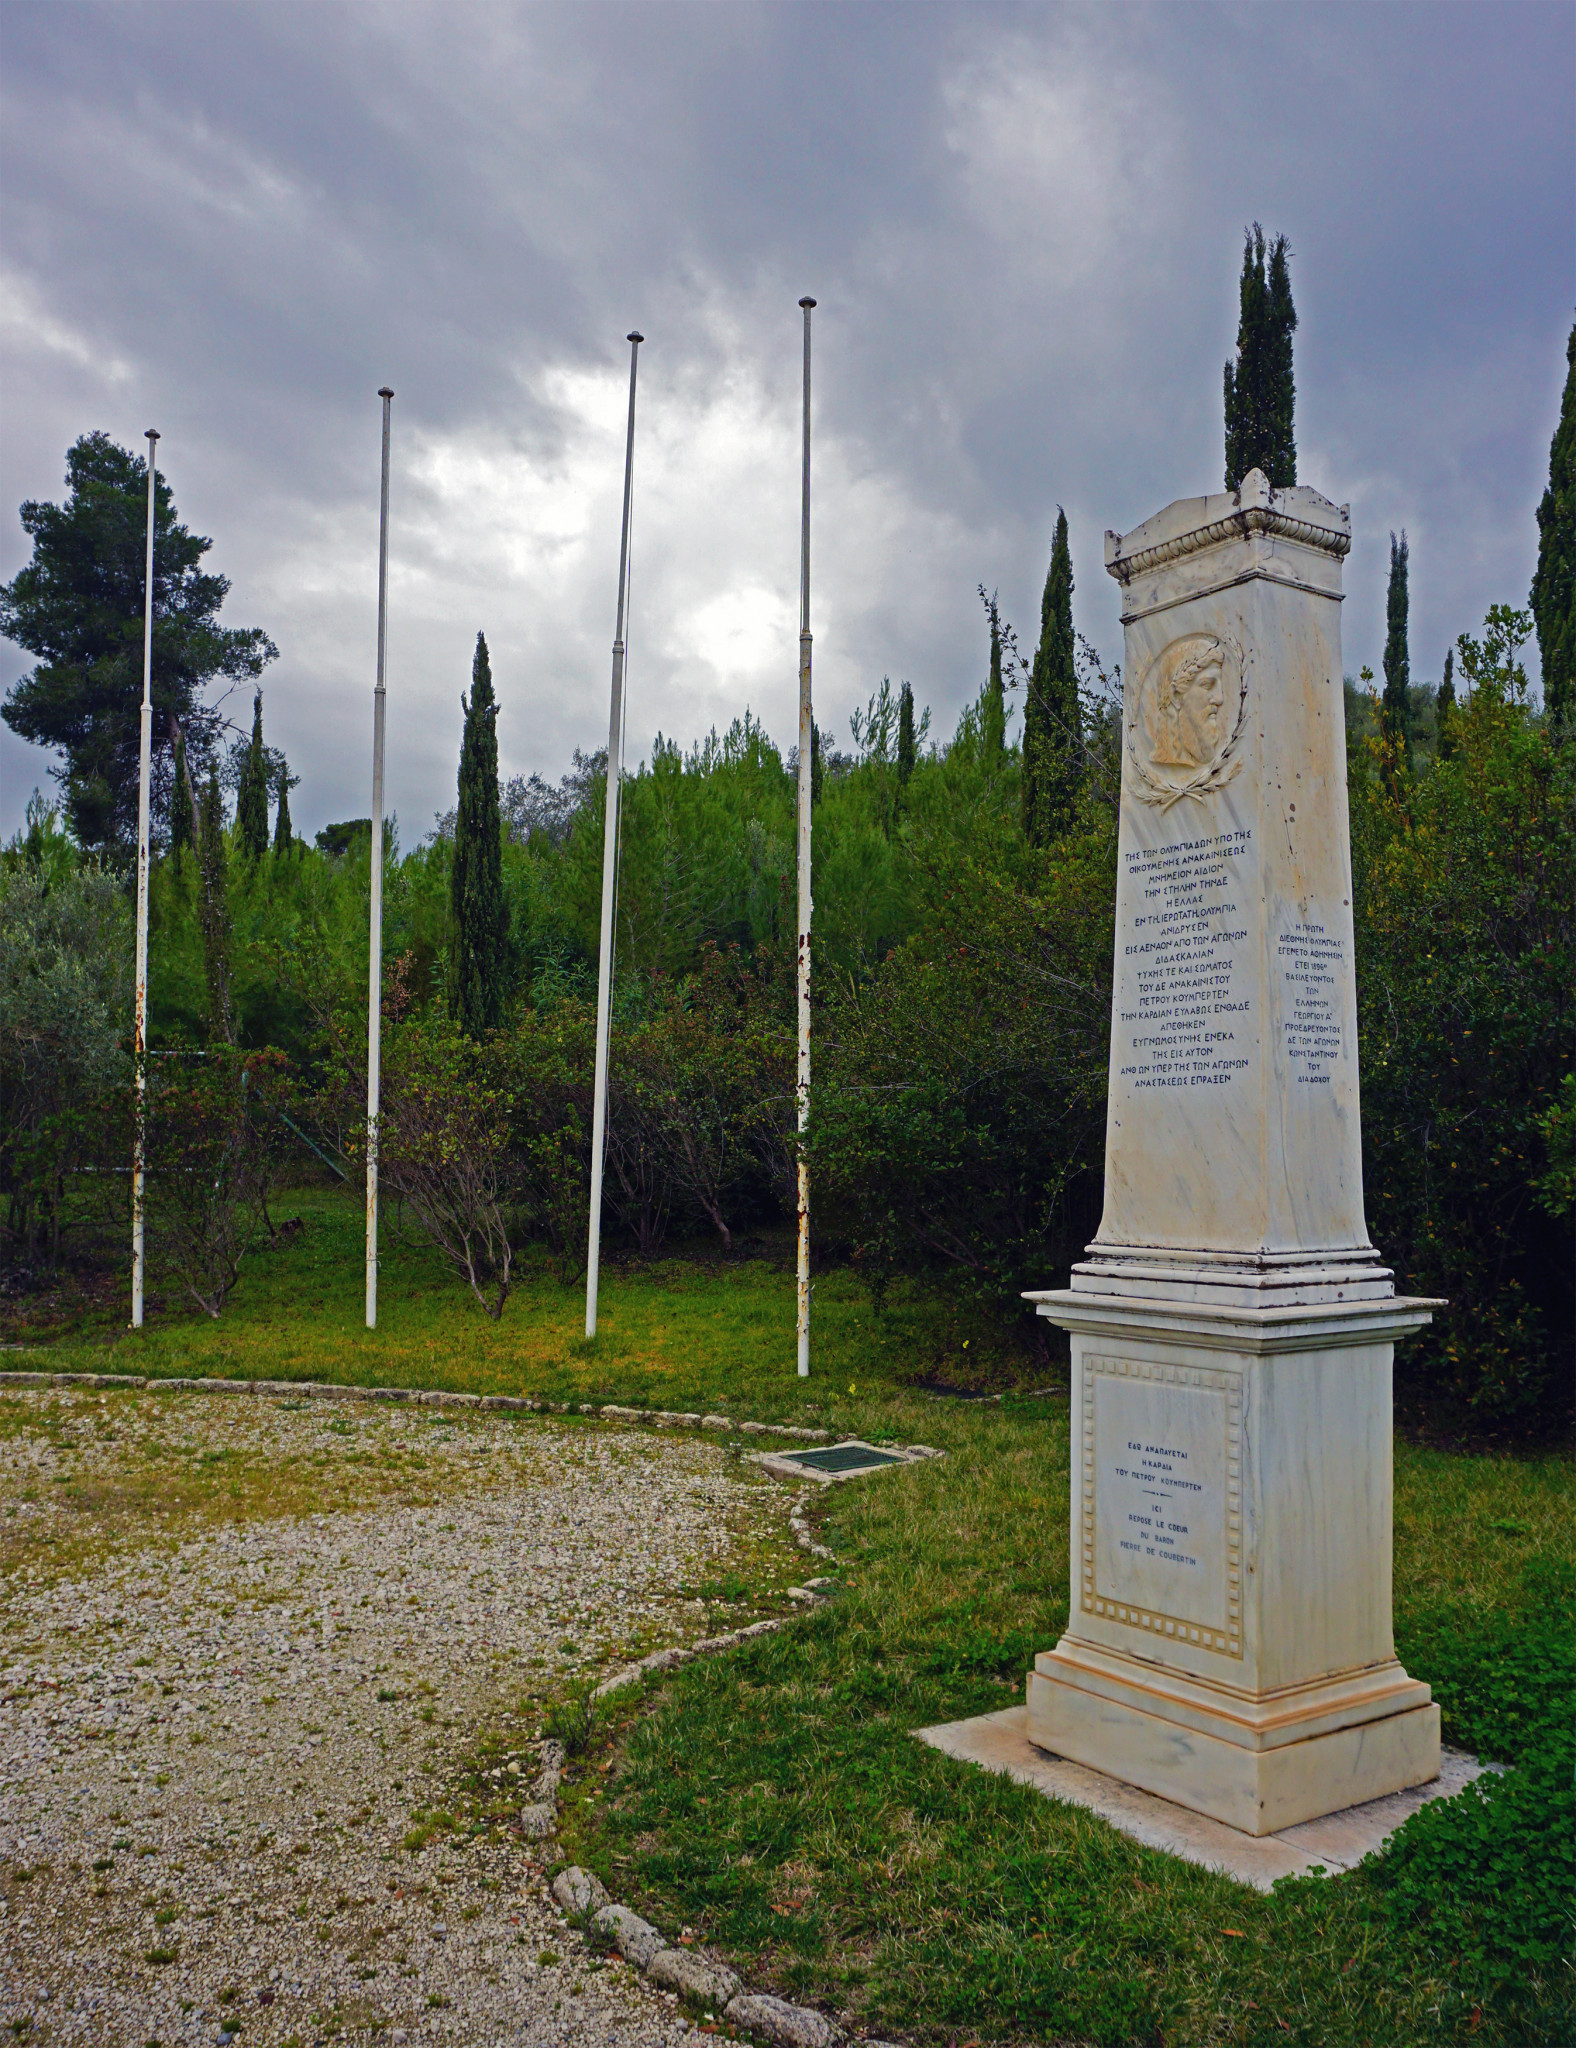 Greek IOC member Count Alexandros Mercati  ensured the wish of Baron Pierre de Coubertin, founder of the modern Olympic Movement, that his heart was interred in Ancient Olympia ©Wikipedia